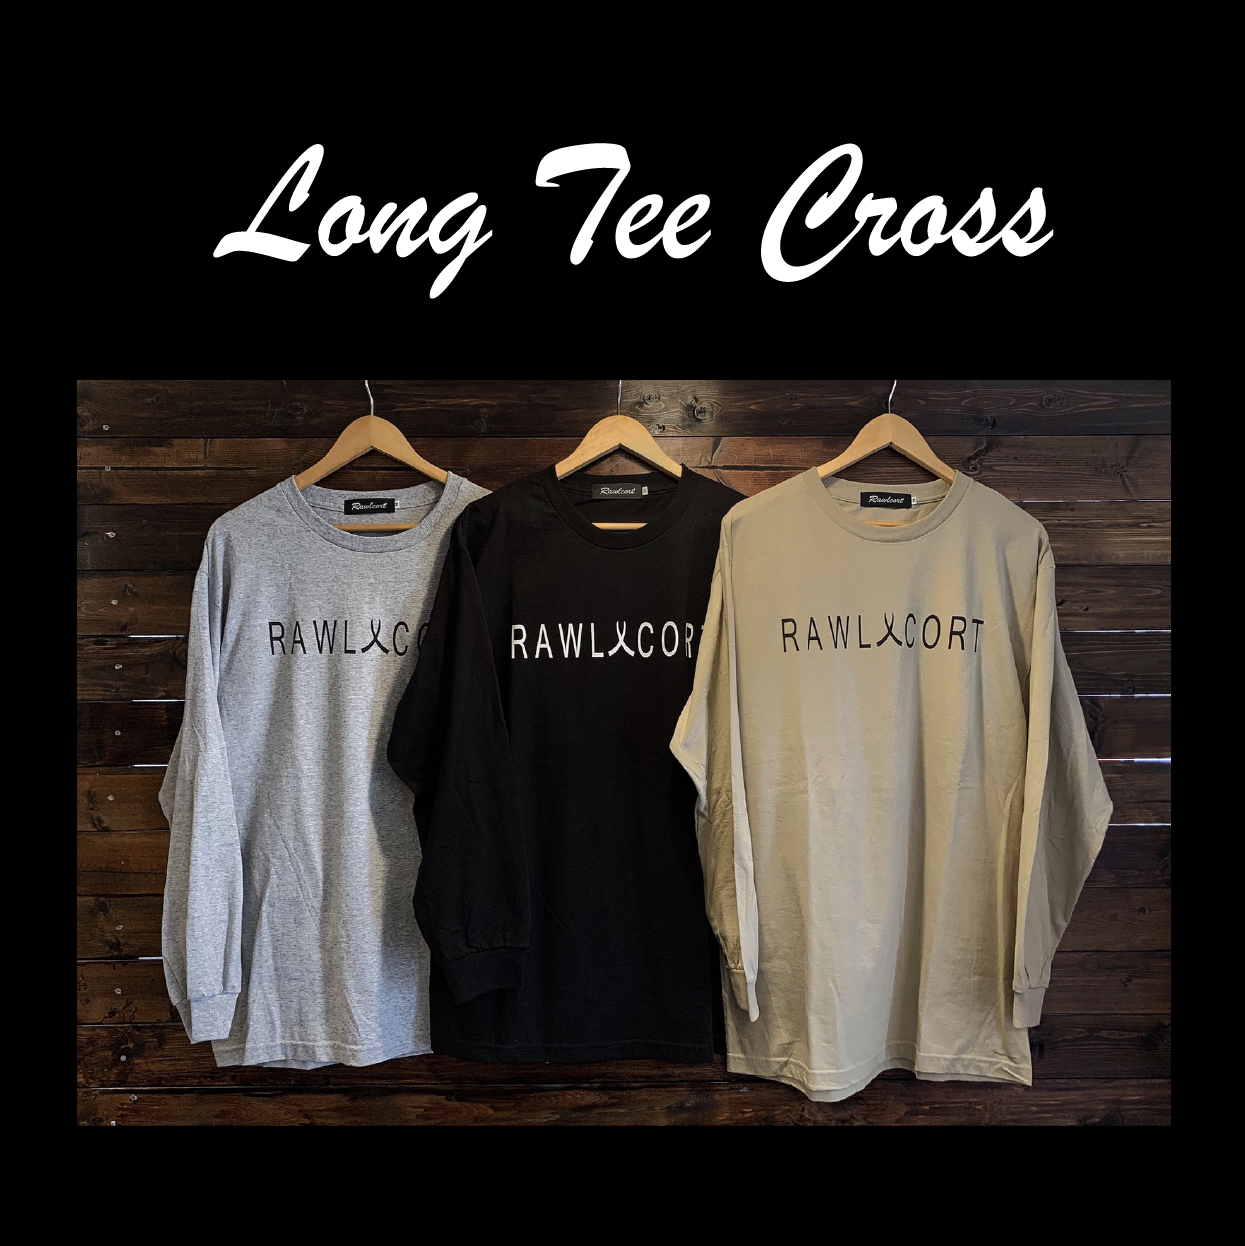 Long Tee Cross